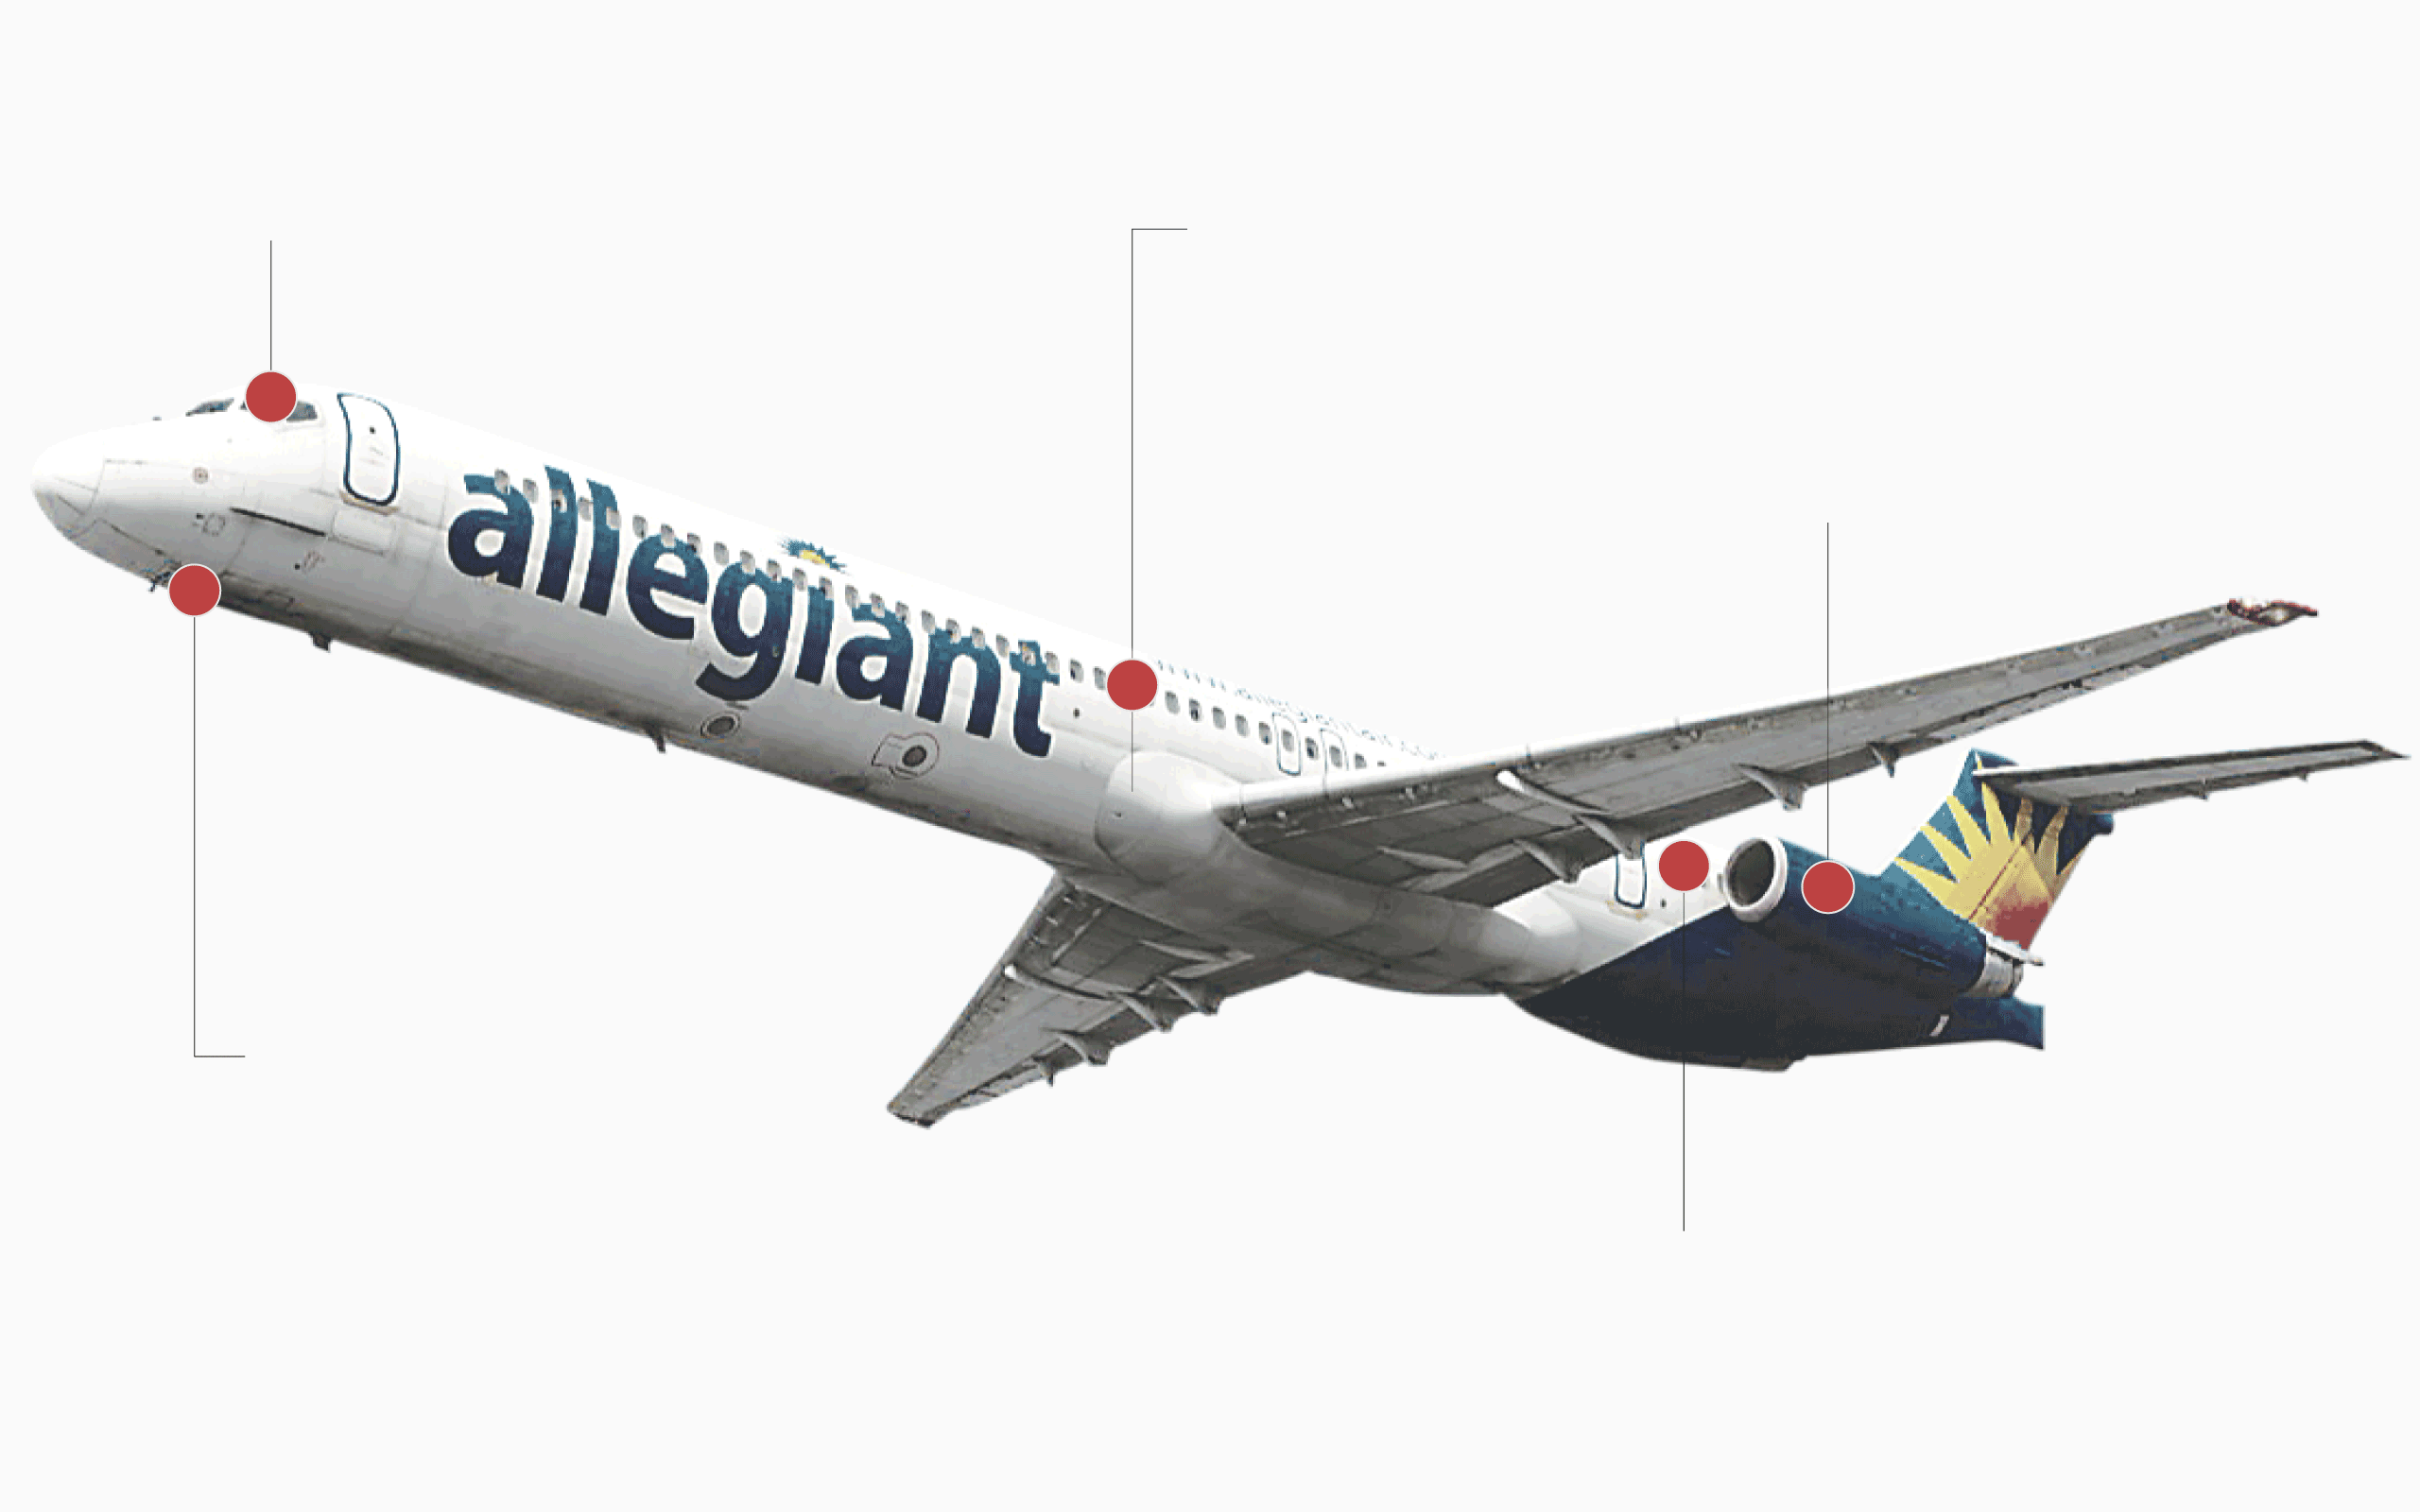 Thousands of people flew Allegiant thinking their planes